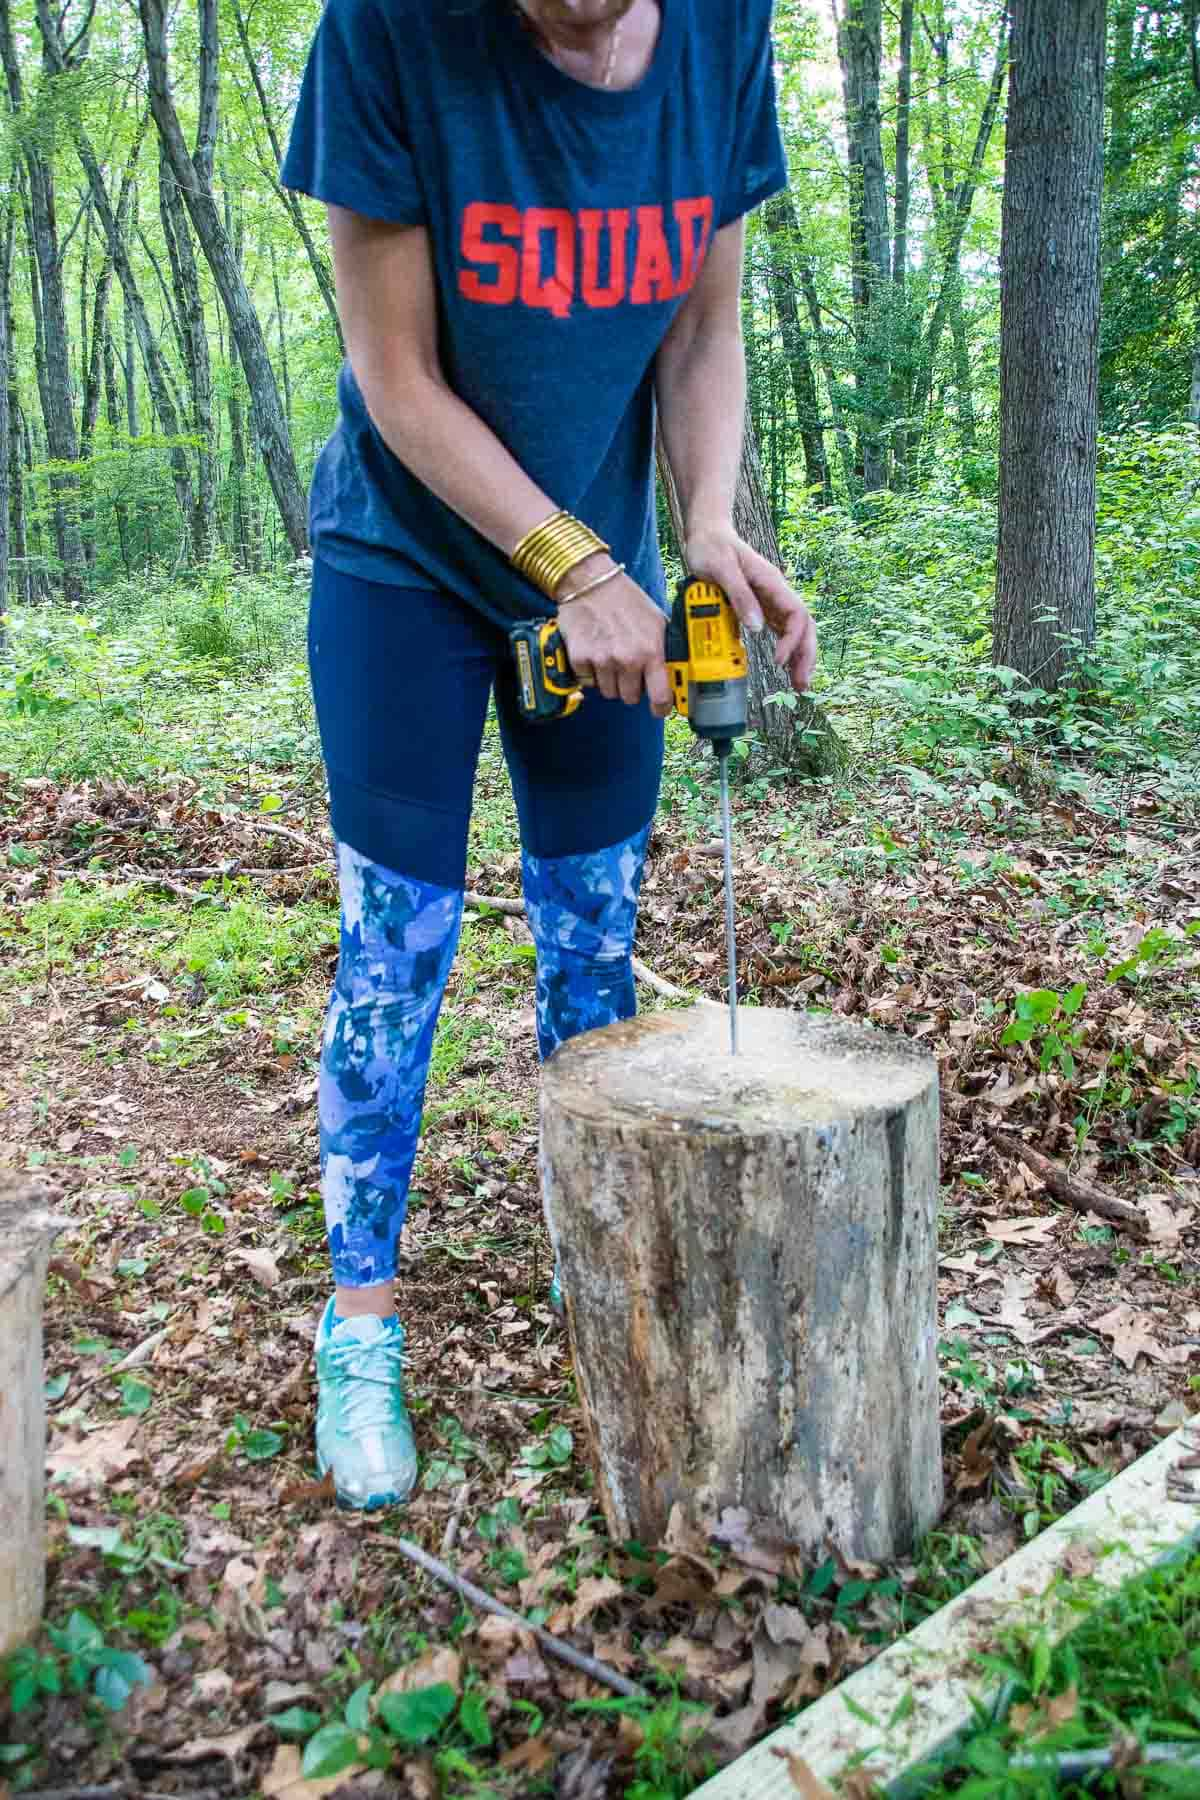 drilling into stumps